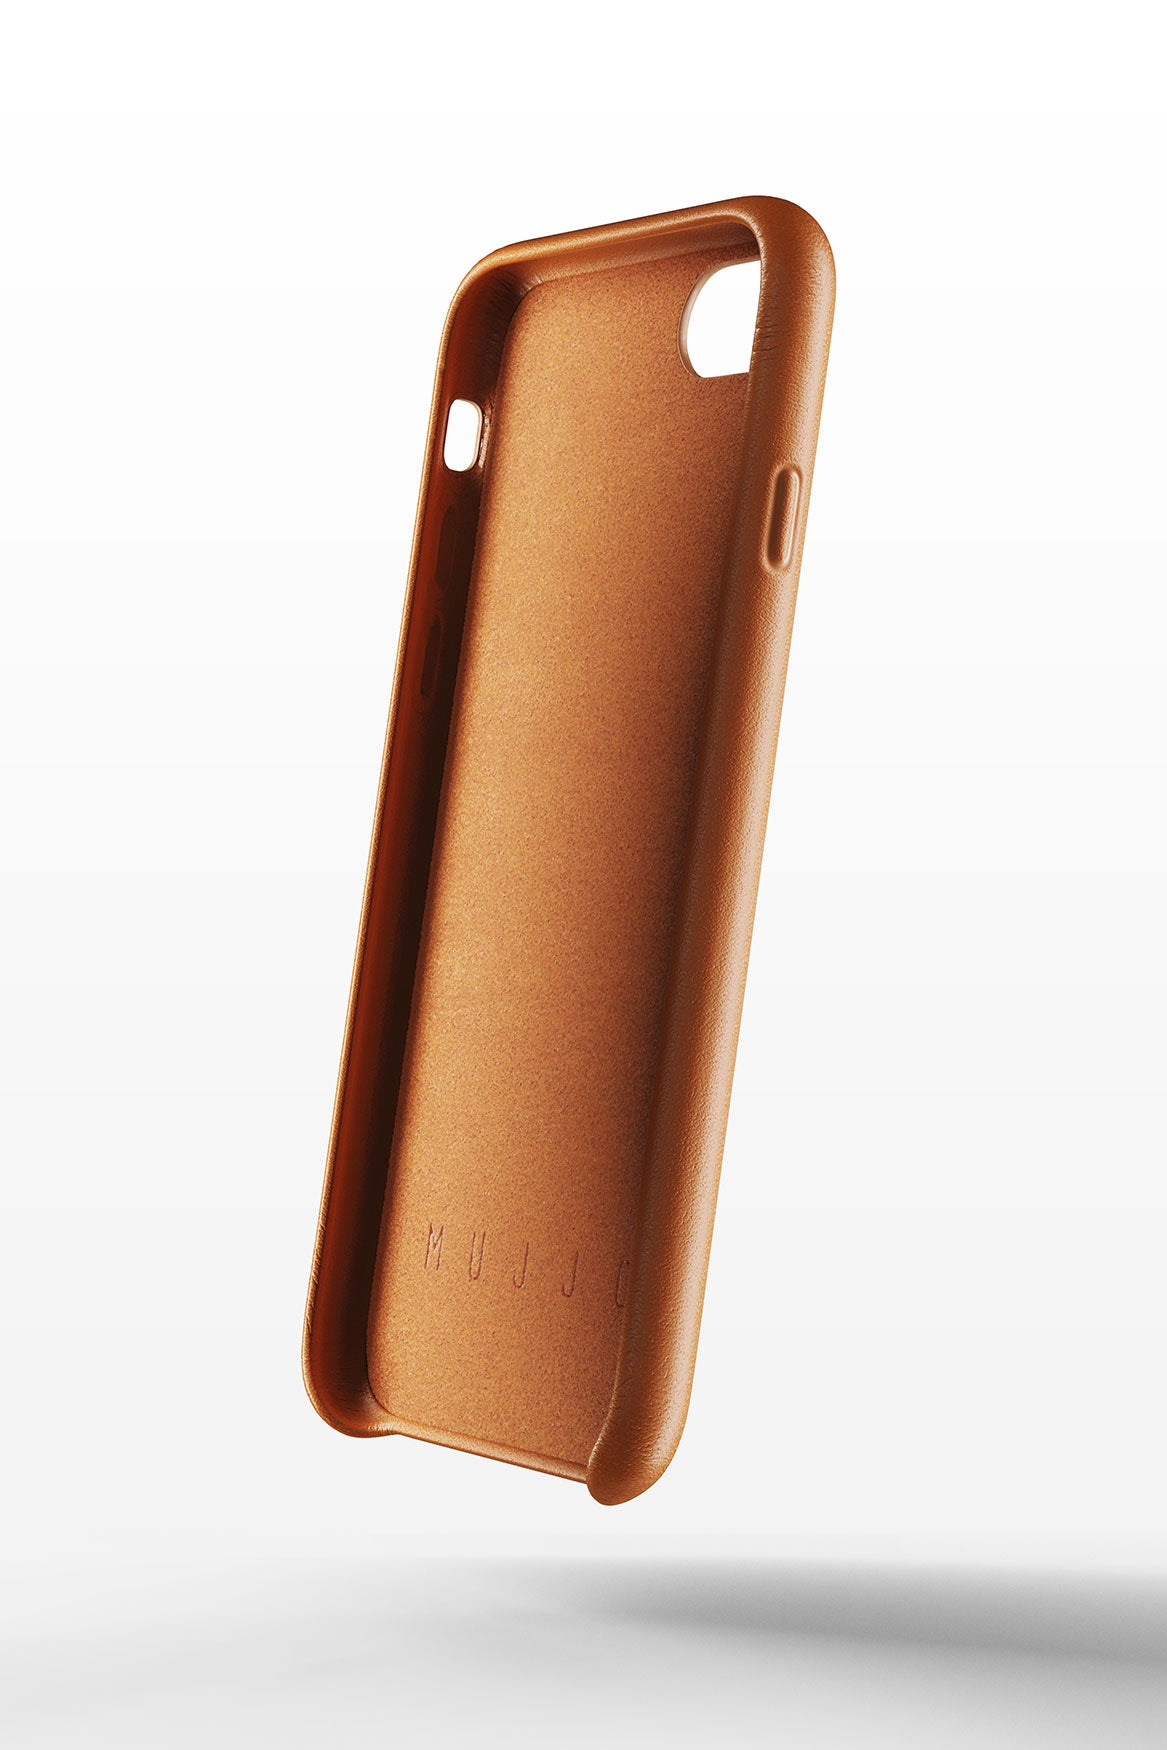 coque iphone 8 cuir marron